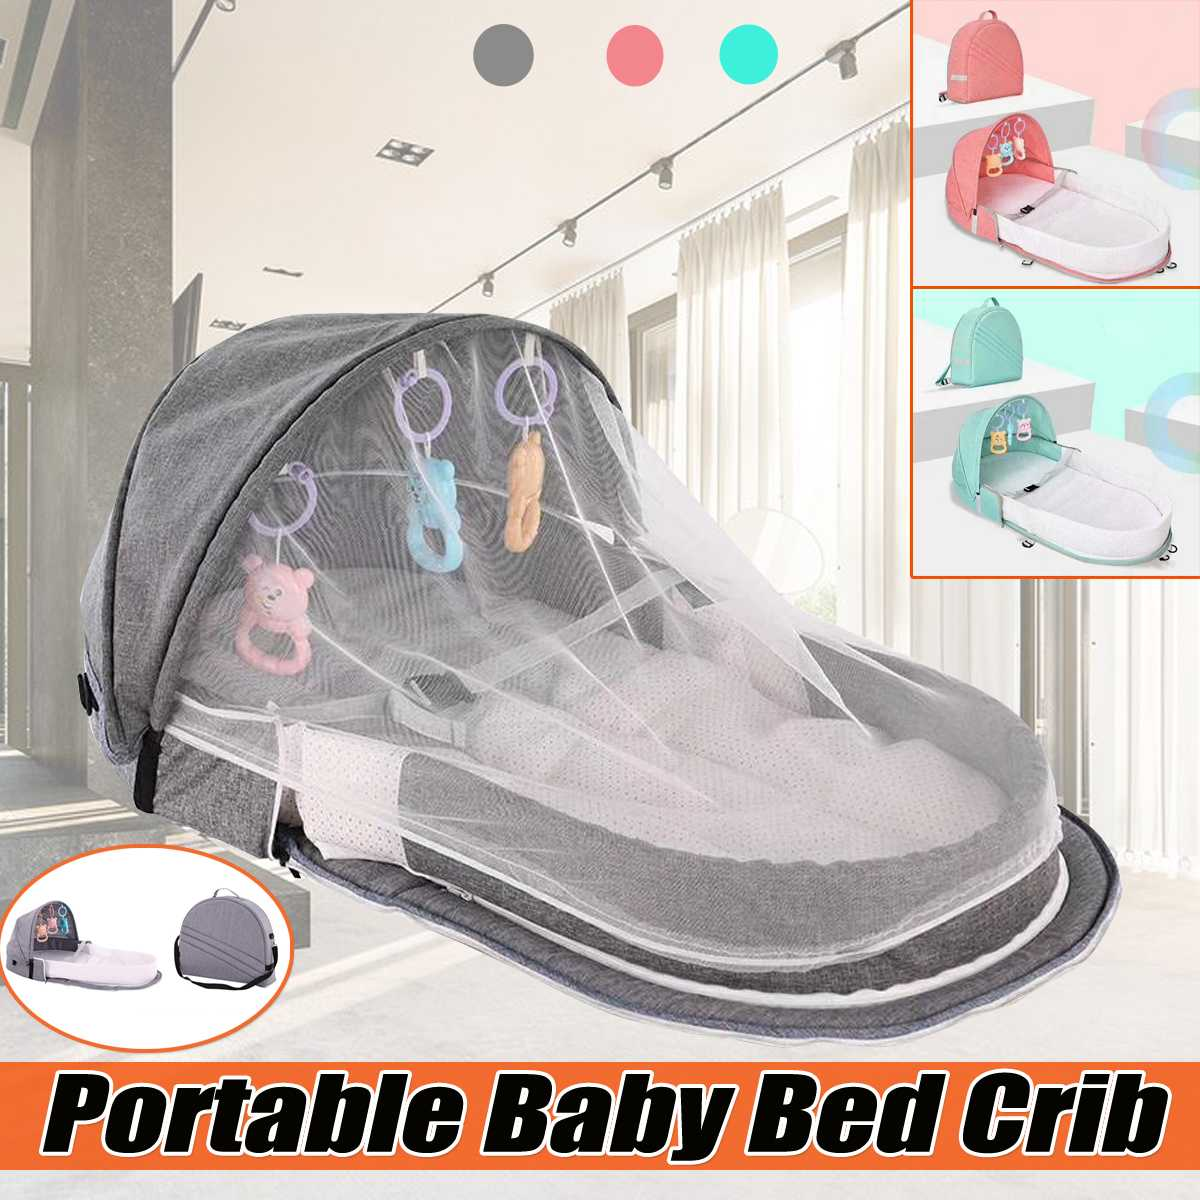 Foldable Baby Bed Multi-function Mummy Bag Portable Travel Baby Crib Cot With Mosquito Net Breathable Infant Sleeping Basket